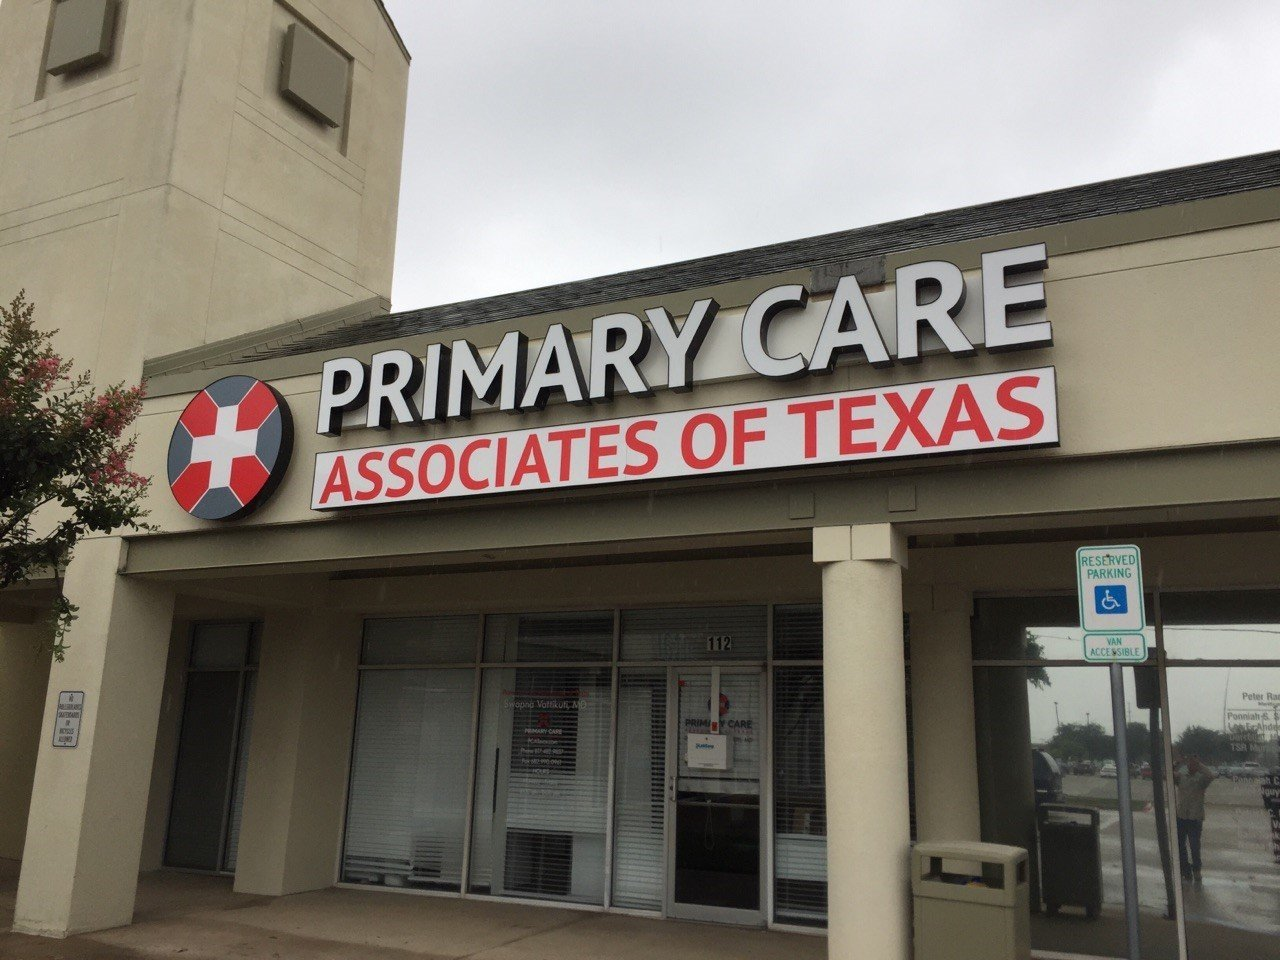 Primary care of Texas sign